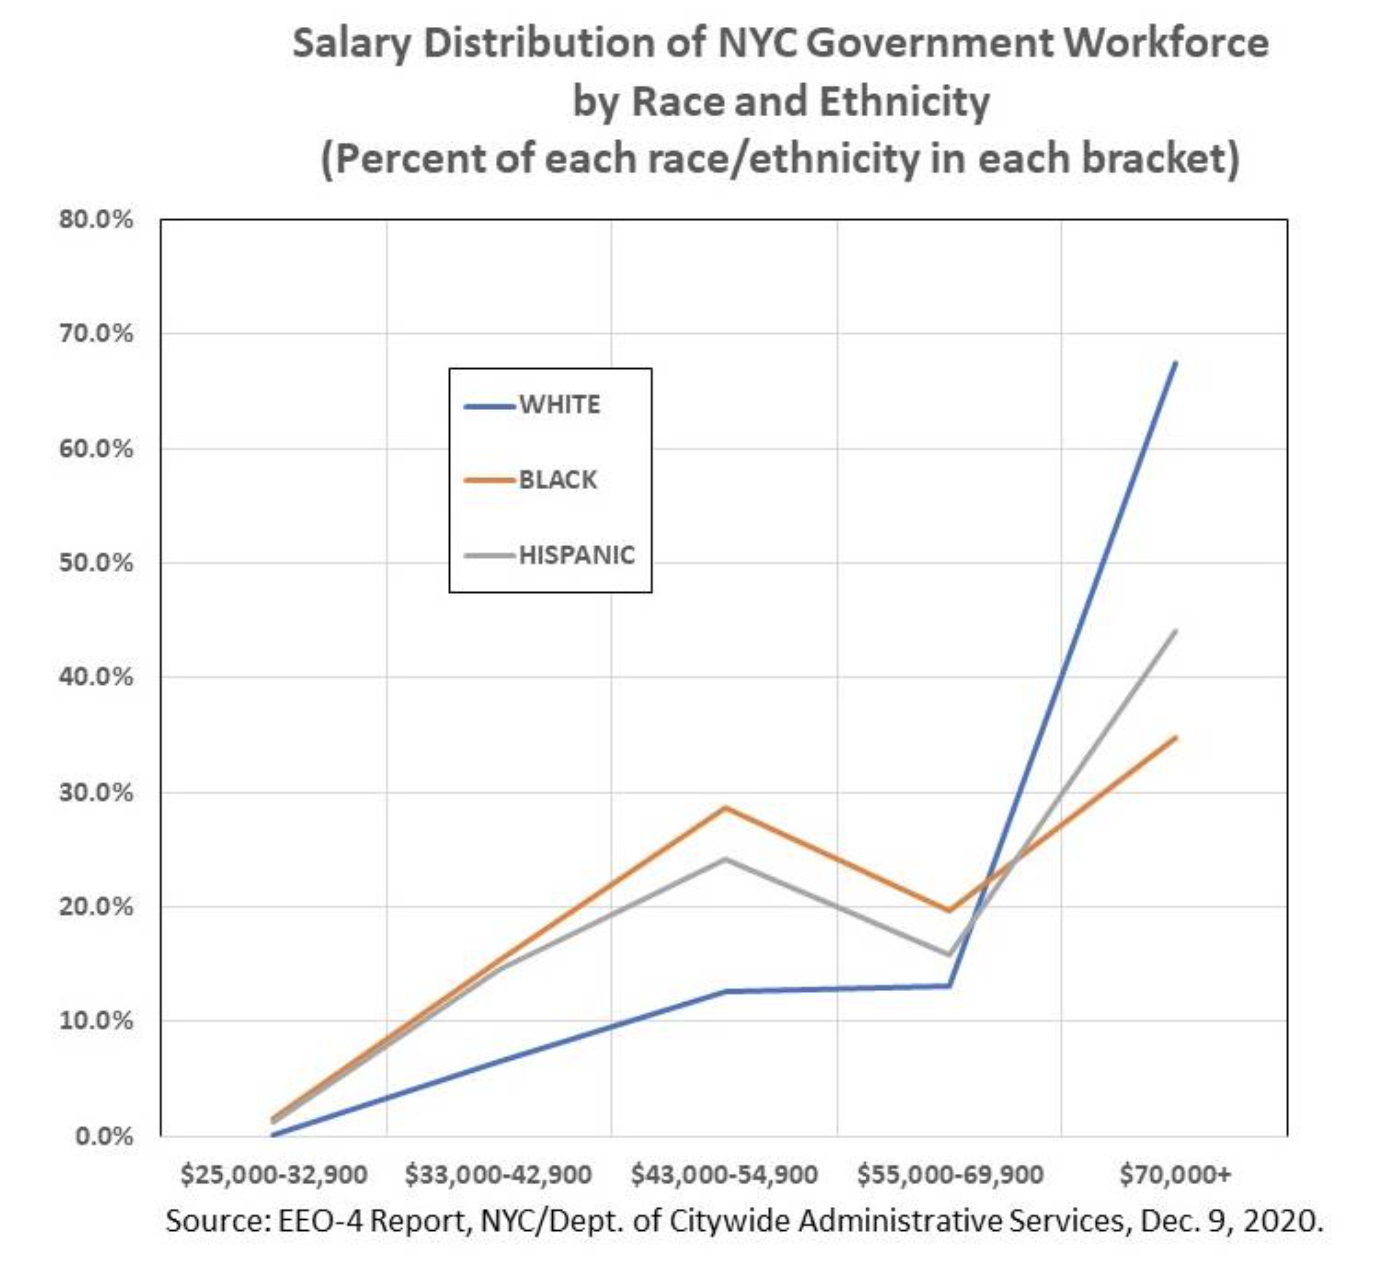 Graph illustrating Salary Distribution of NYC Government Workforce by Race and Ethnicity